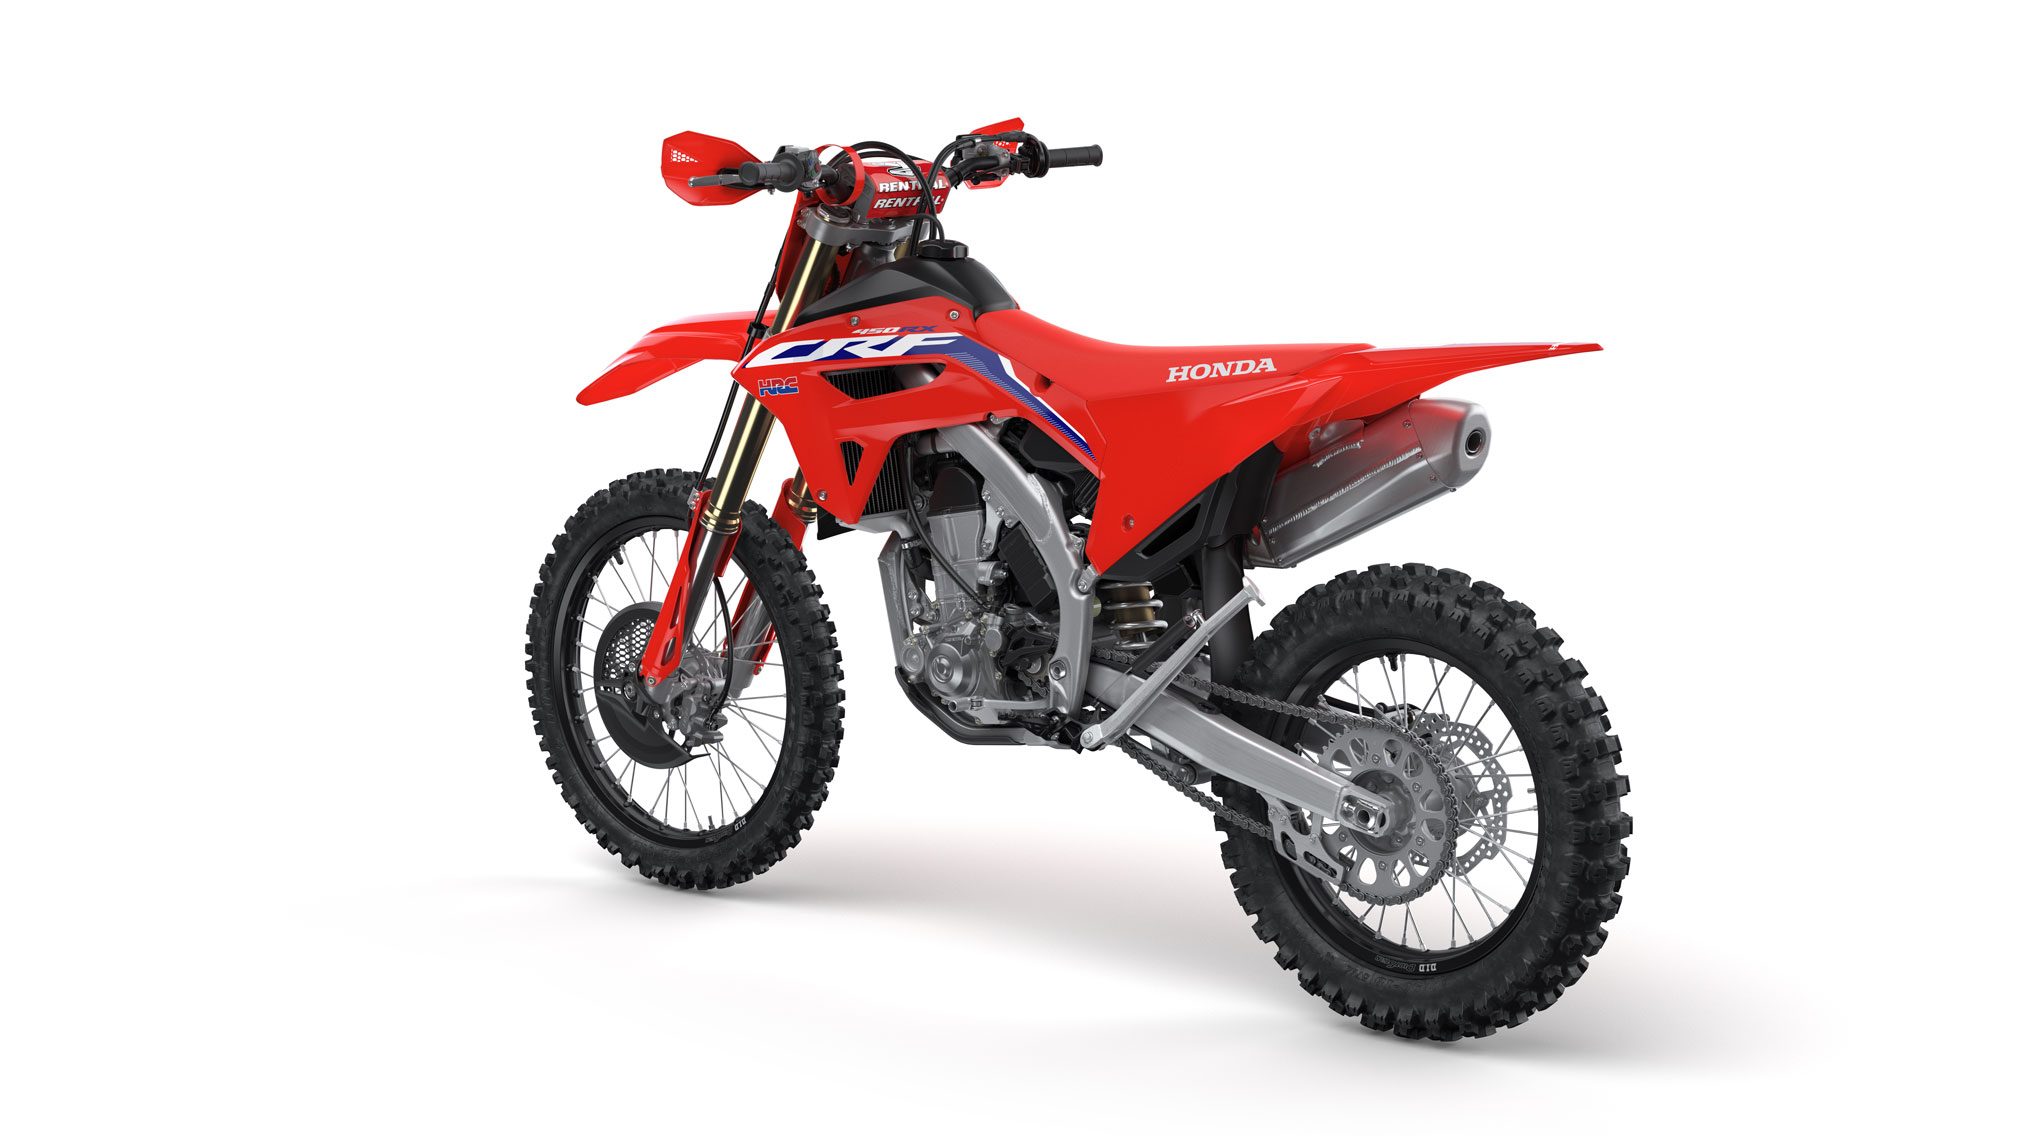 2021 honda crf450rx guide • total motorcycle